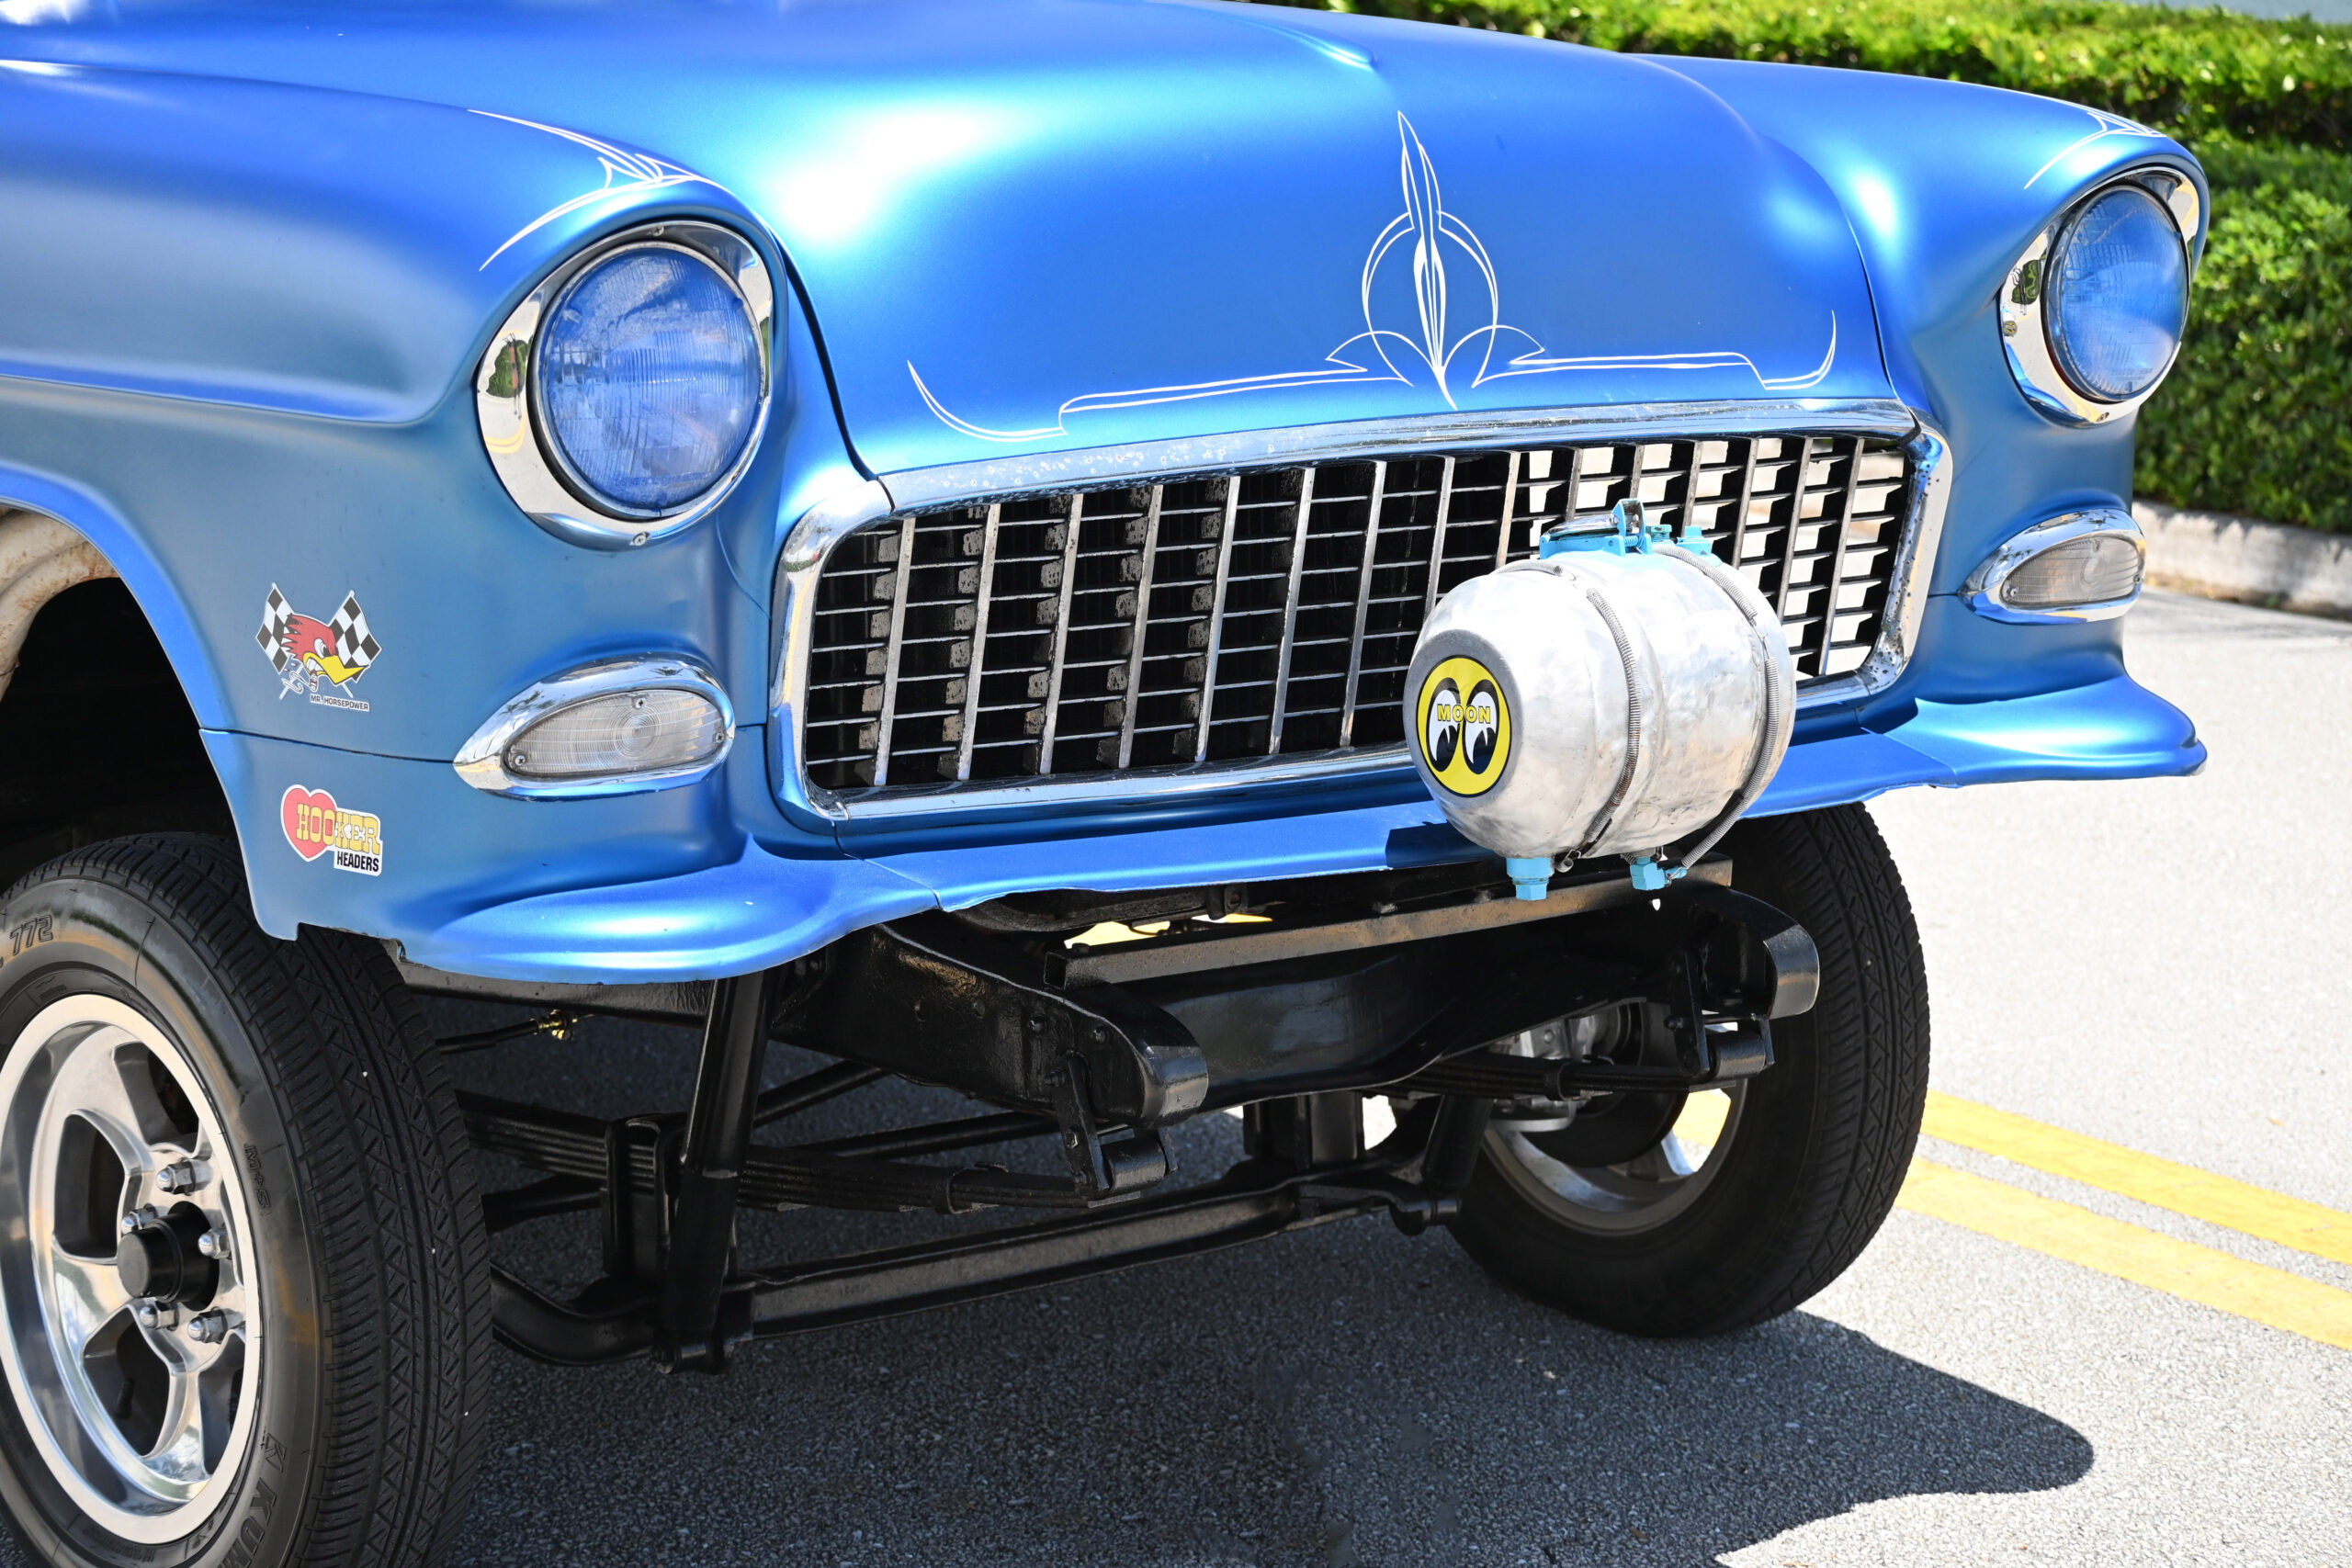 """1955 Chevrolet 210 Old school """"GASSER'' 327 cubic inch and 4 speed Muncie transmission and 12 bolt posi diff – front disk brakes with corvette master cylinder"""